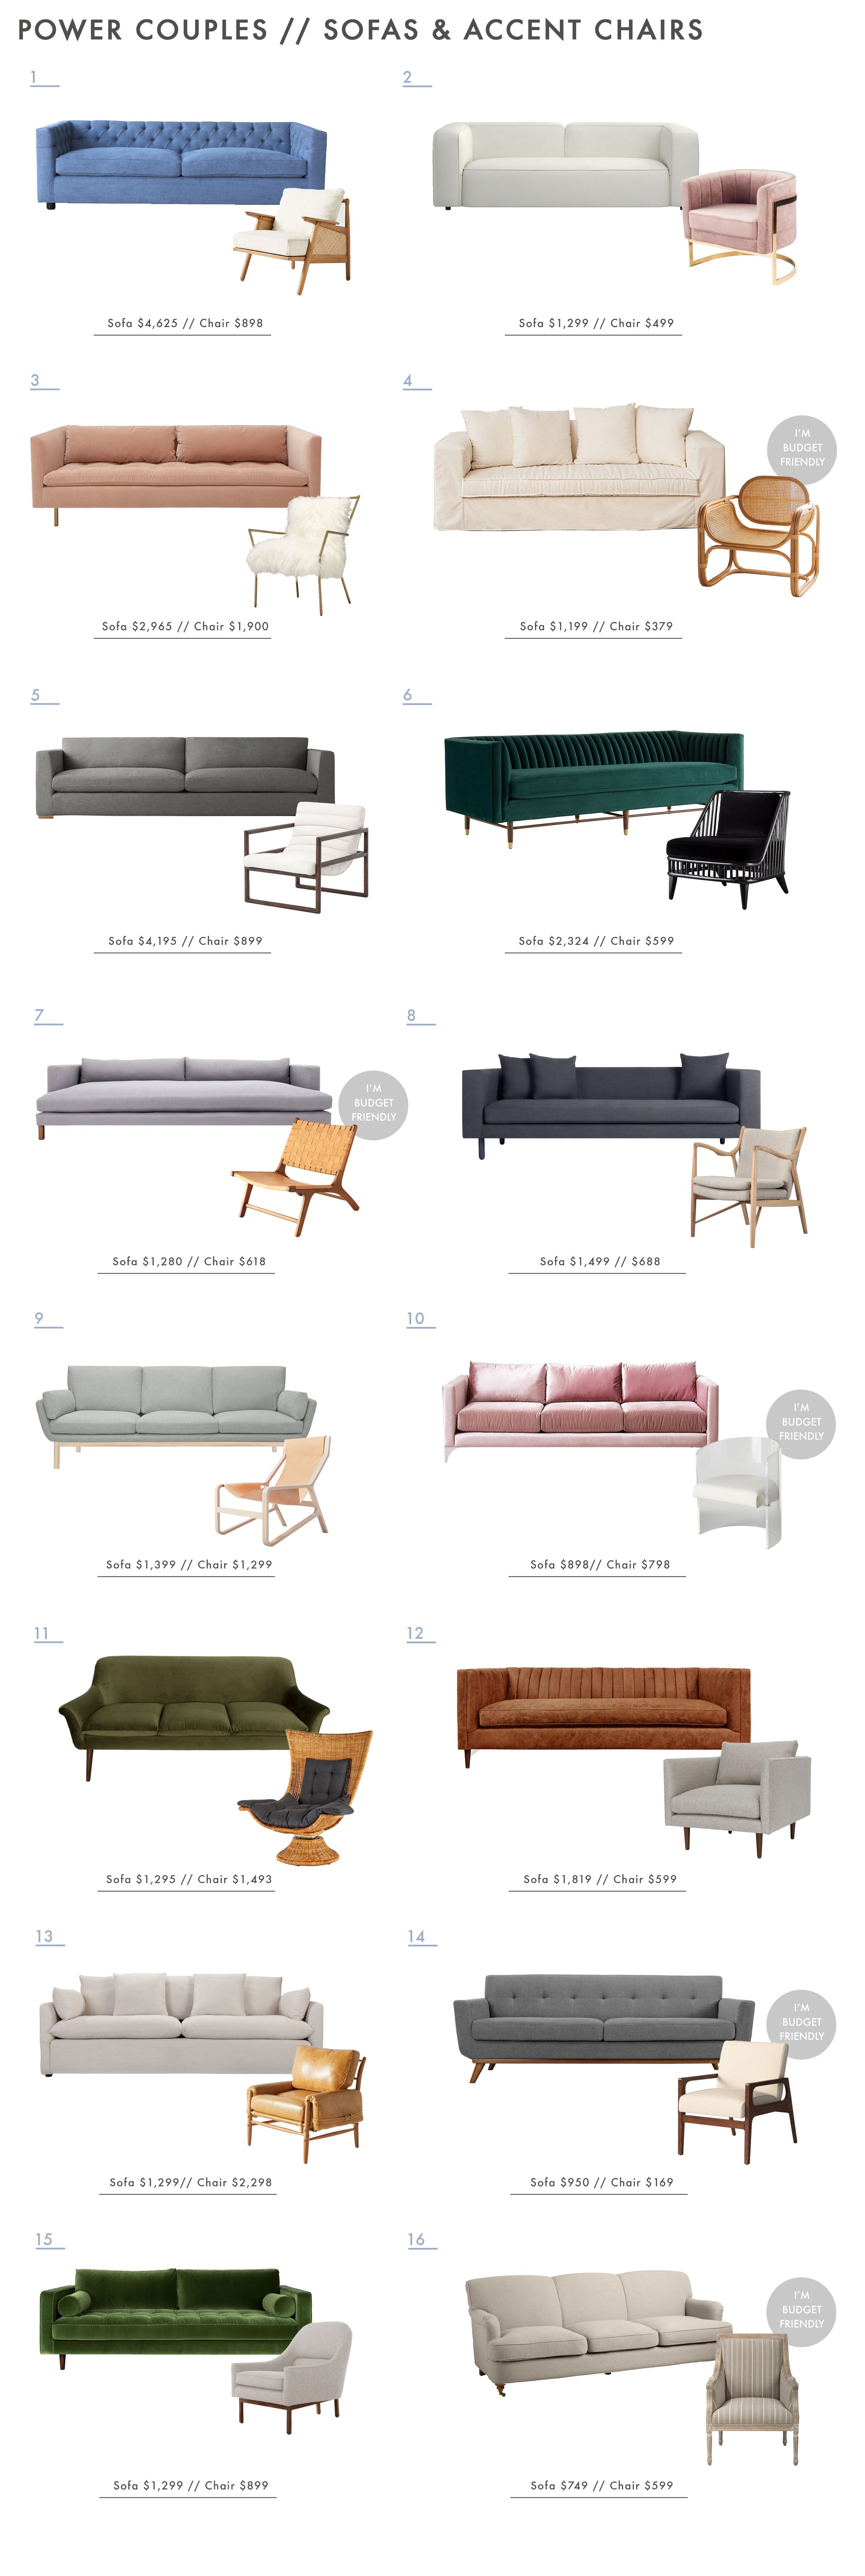 Power Couples Sofas Amp Accent Chairs A Few Rules